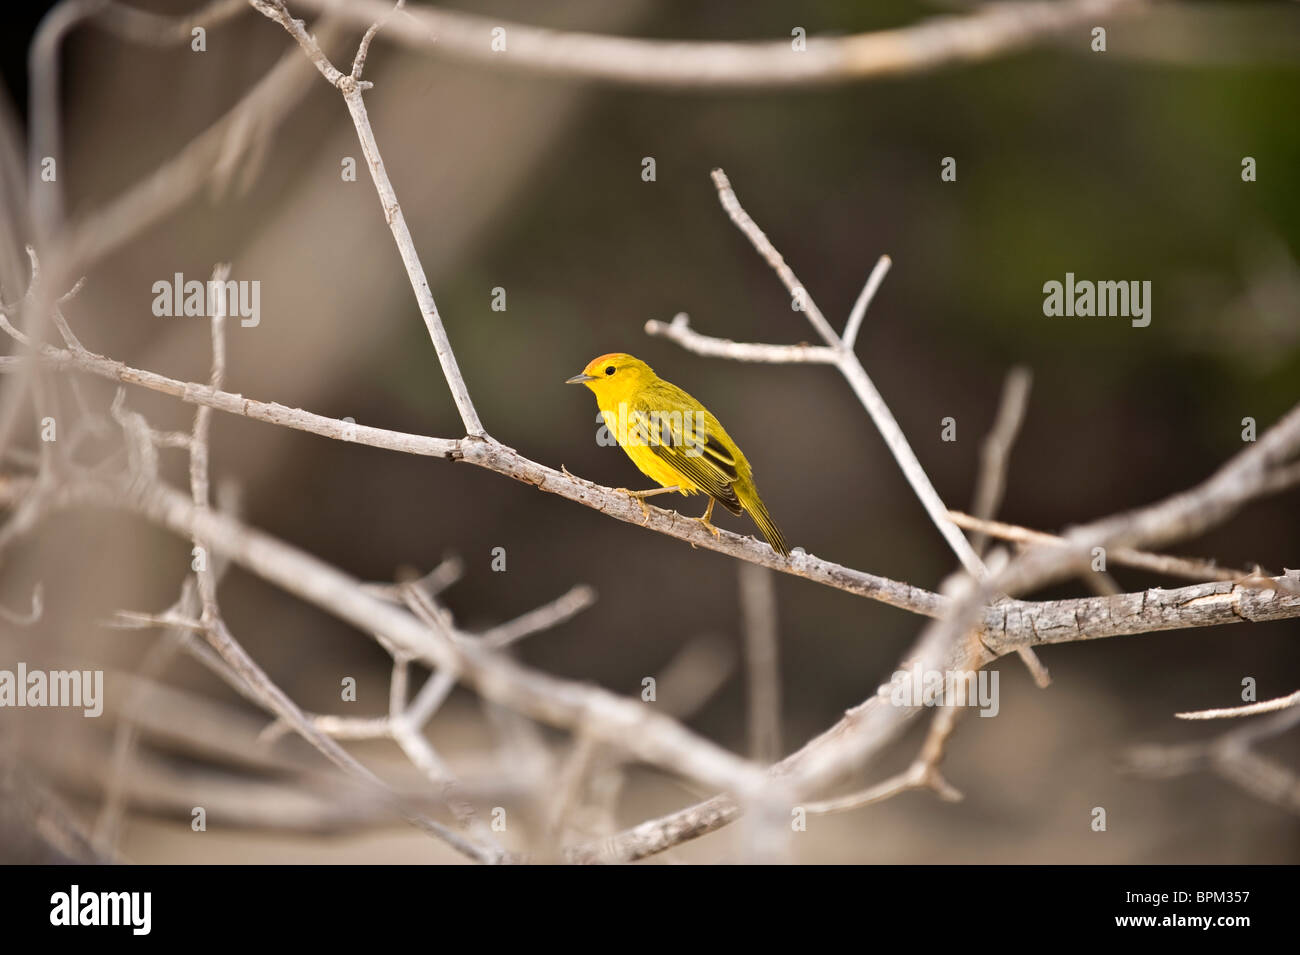 South America, Ecuador, Galapagos Islands, Yellow Warbler, male, perched on branch, Sea Lion Island - Stock Image